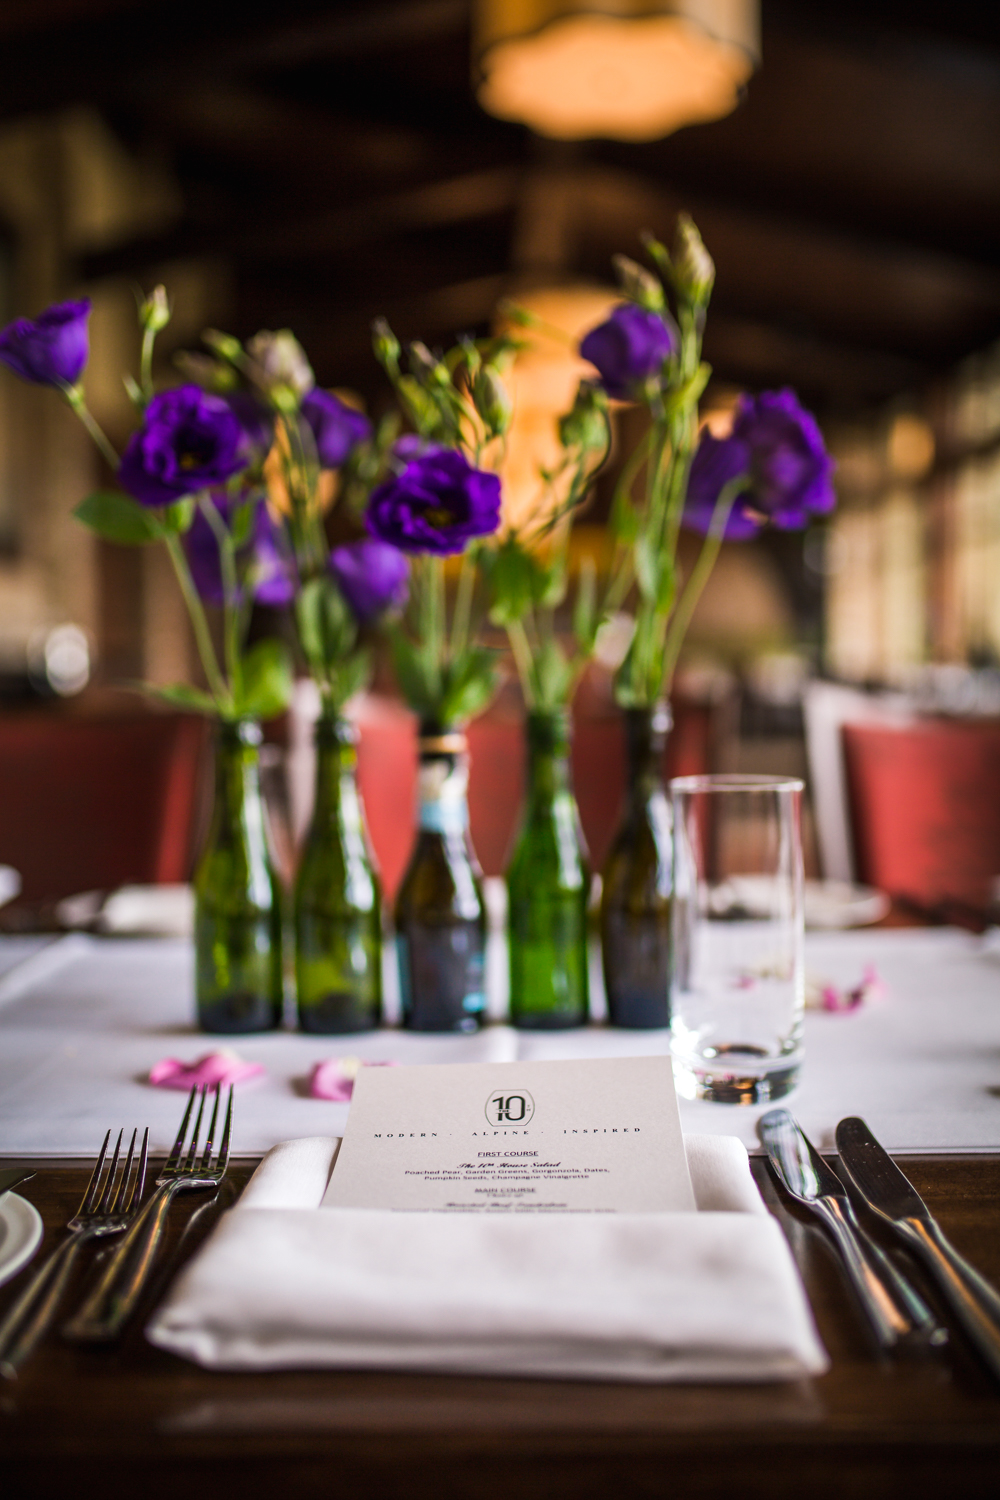 Wedding details.Vail Colorado Wedding photographed by JMGant Photography.